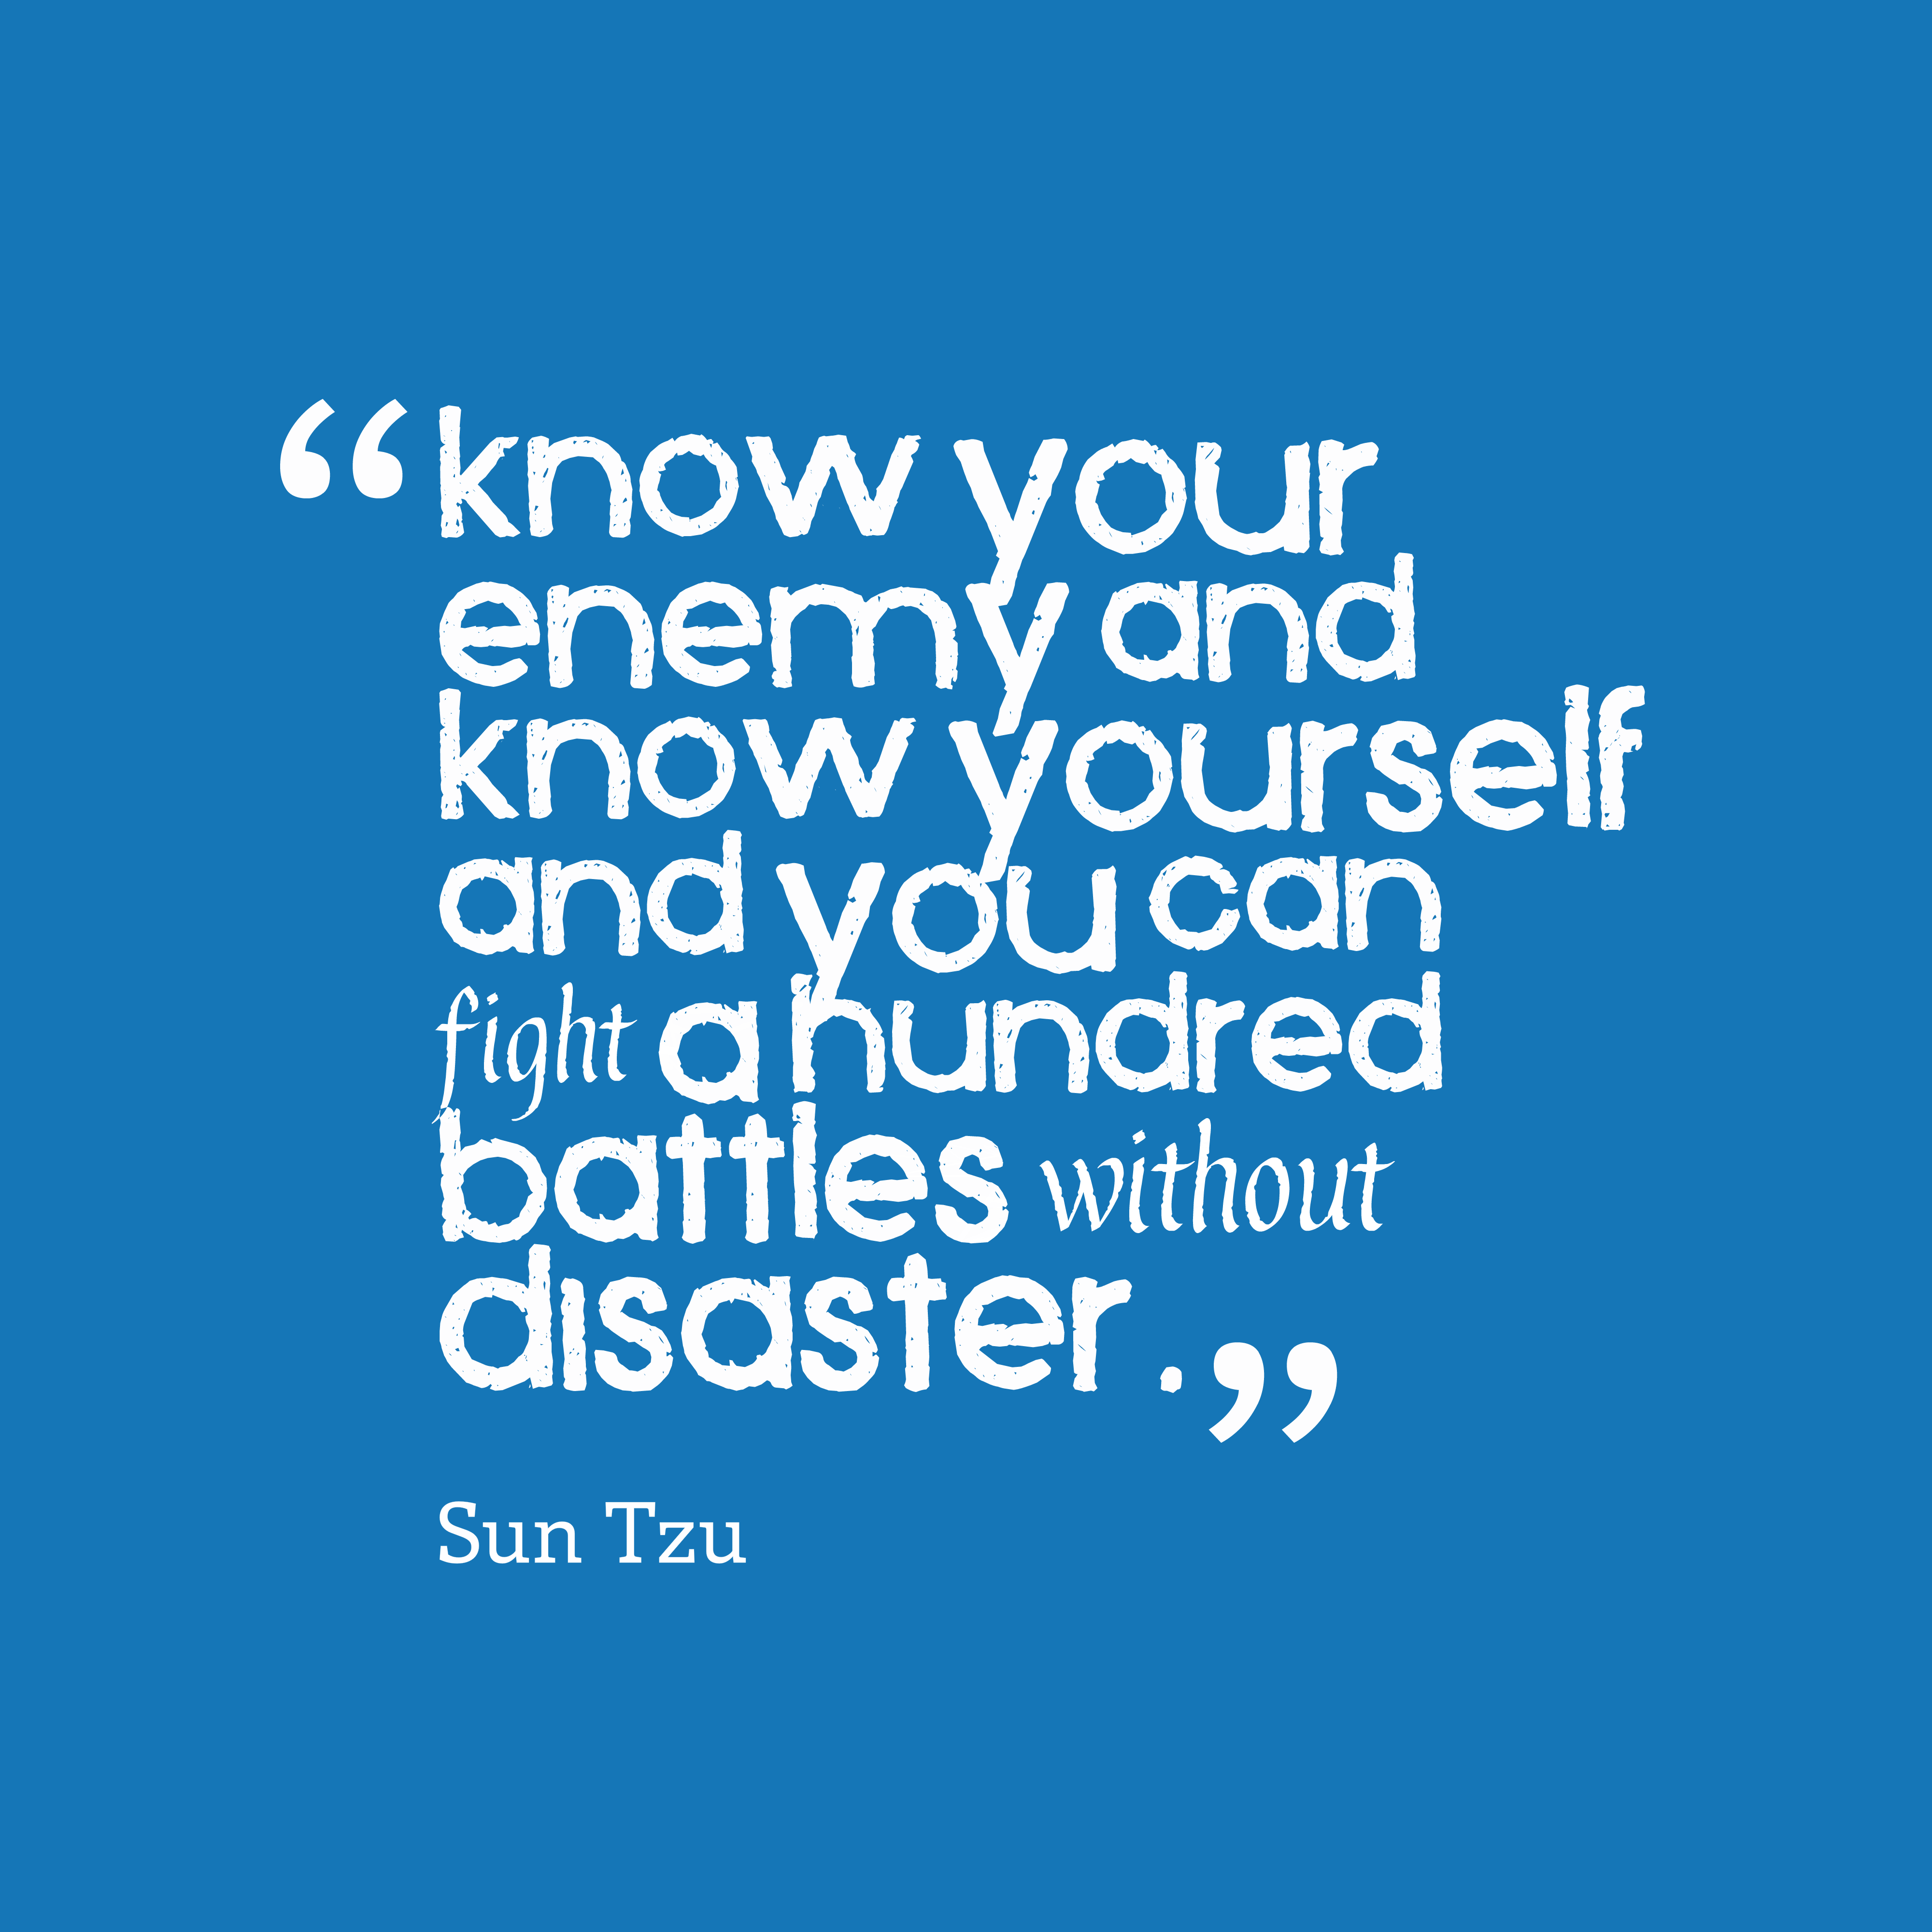 Quotes About Fighting: Fighting Battles Quotes. QuotesGram